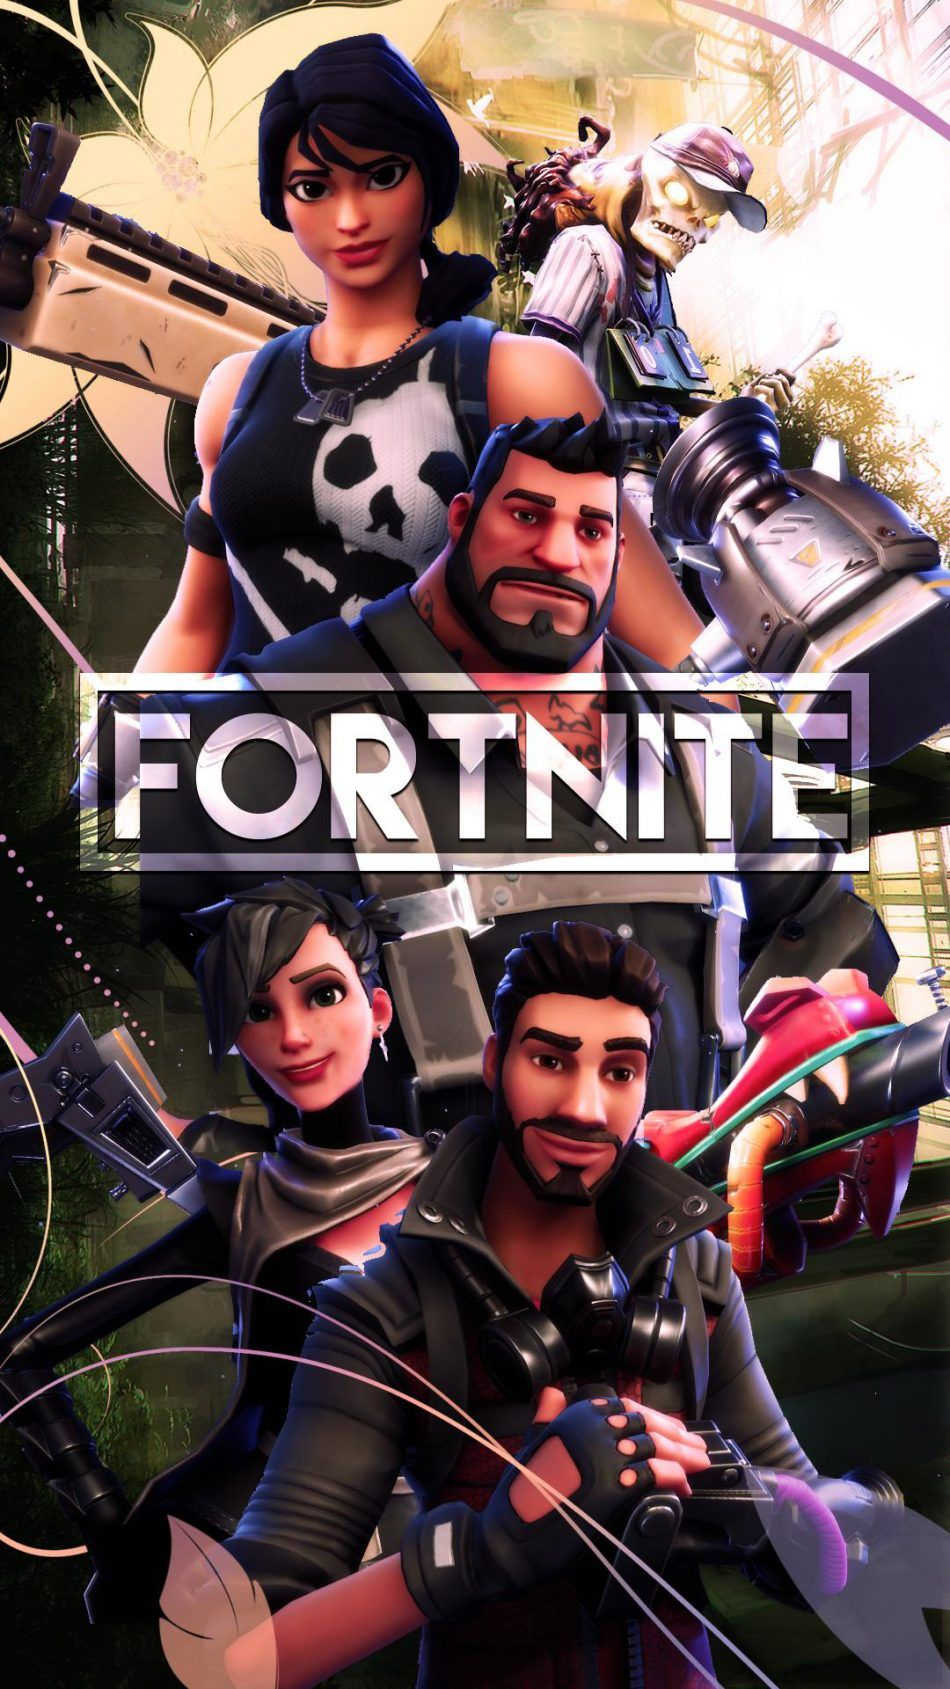 Team Squad Fortnite Battle Royale Hd Mobile Wallpaper Android Wallpaper Gaming Wallpapers Mobile Wallpaper